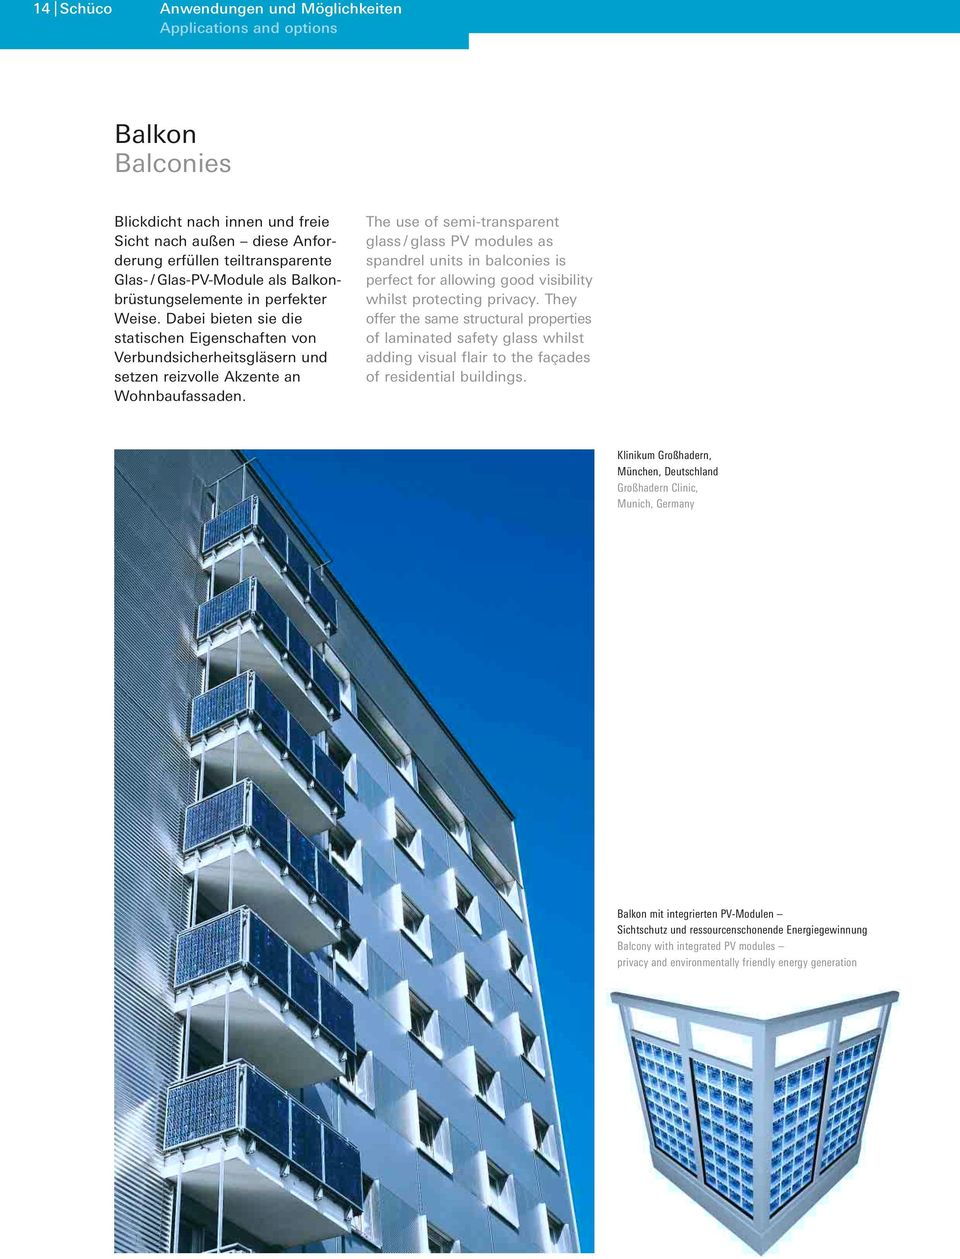 The use of semi-transparent glass / glass PV modules as spandrel units in balconies is perfect for allowing good visibility whilst protecting privacy.